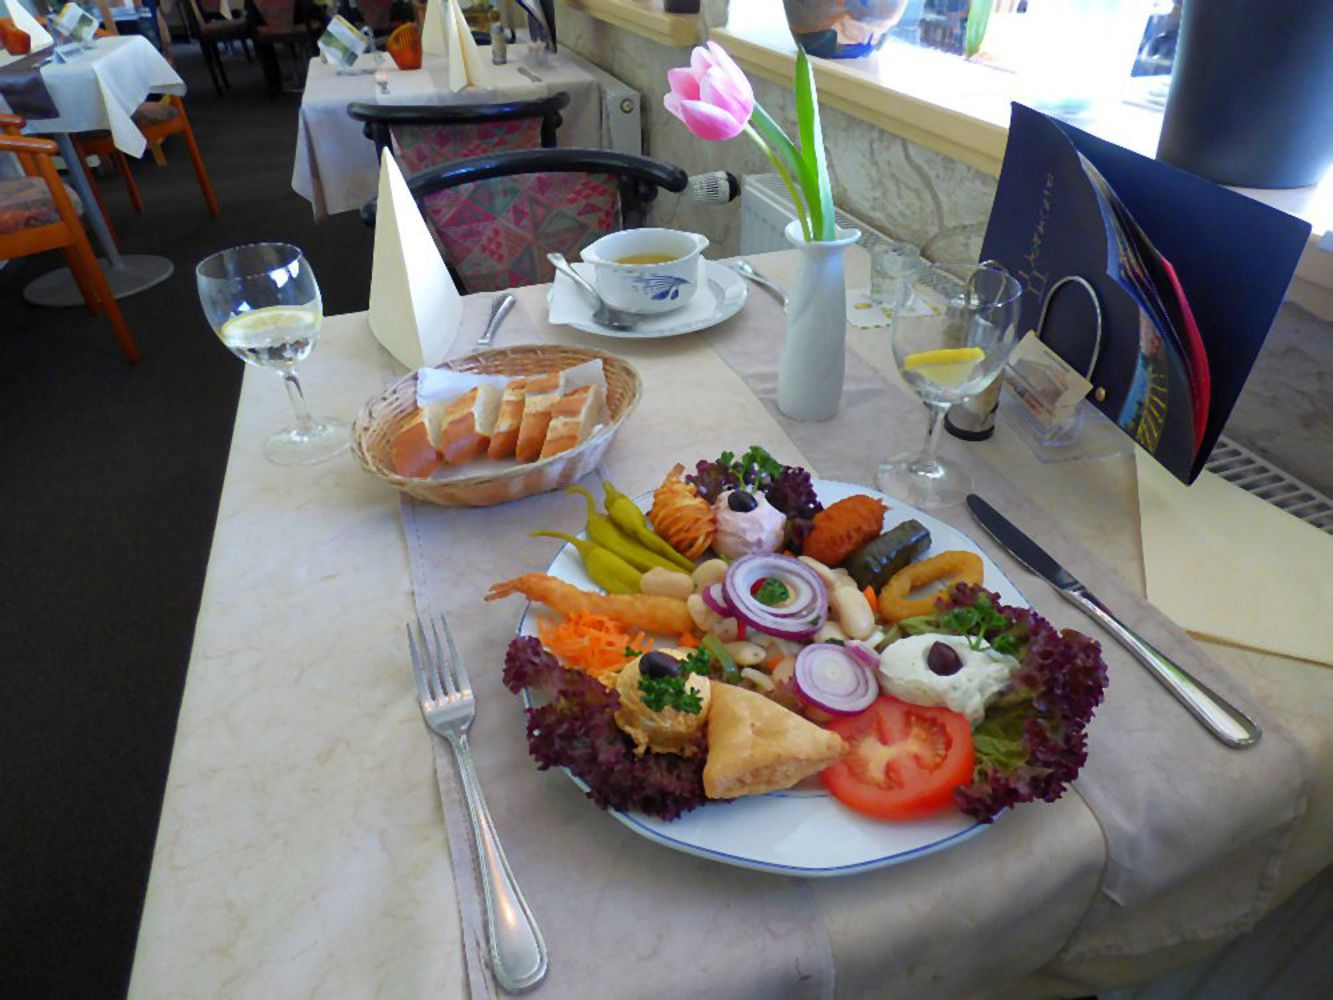 Griechisches restaurant greek food akropolis niendorf for Akropolis greek cuisine merrillville in